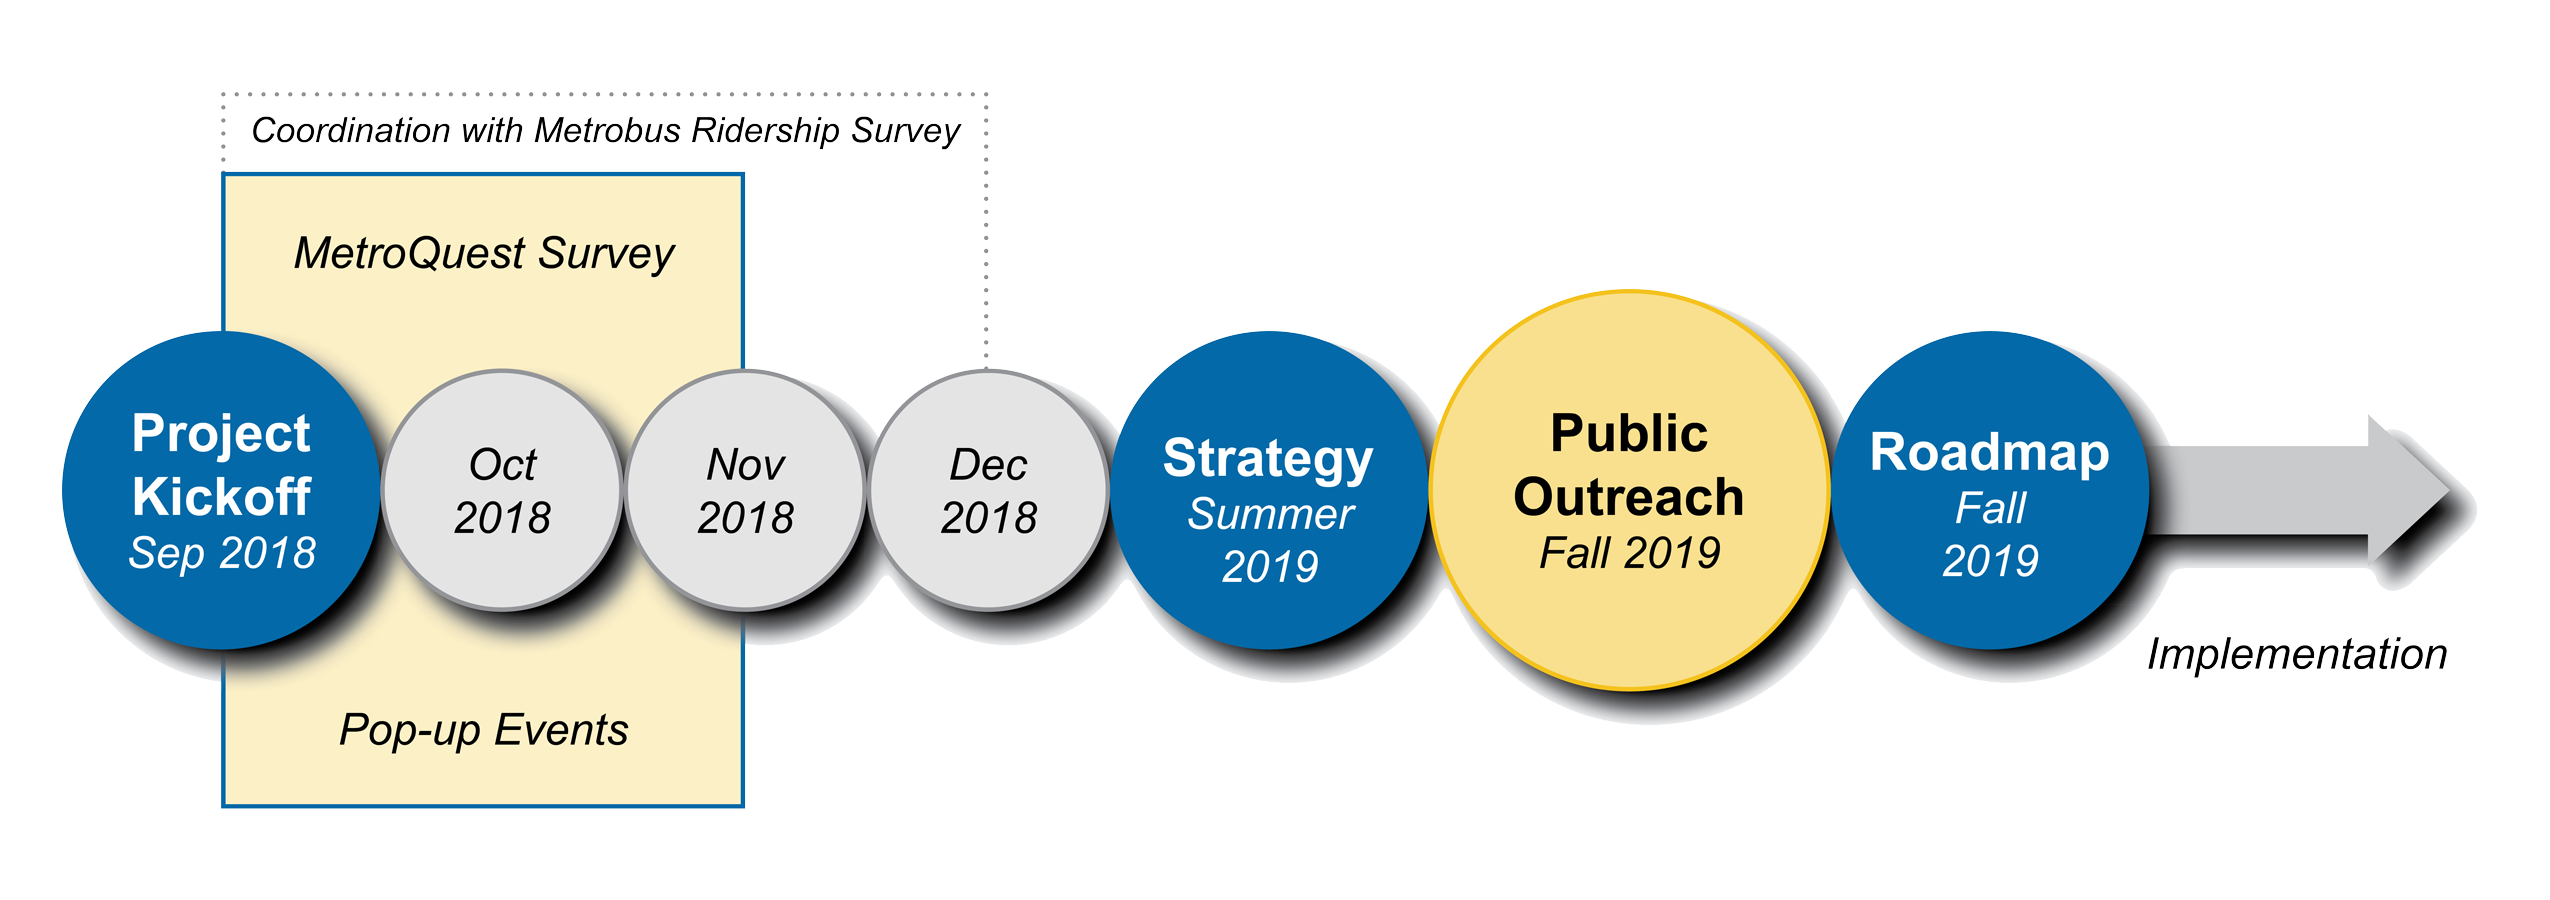 Timeline for the Bus Transformation project in the following order: Project Kickoff in September 2018, MetroQuest Survey and Pop-up Events spanning September, October, and November 2018, Strategy in the summer of 2019, Public Outreach in the fall of 2019, and Roadmap in the fall of 2019